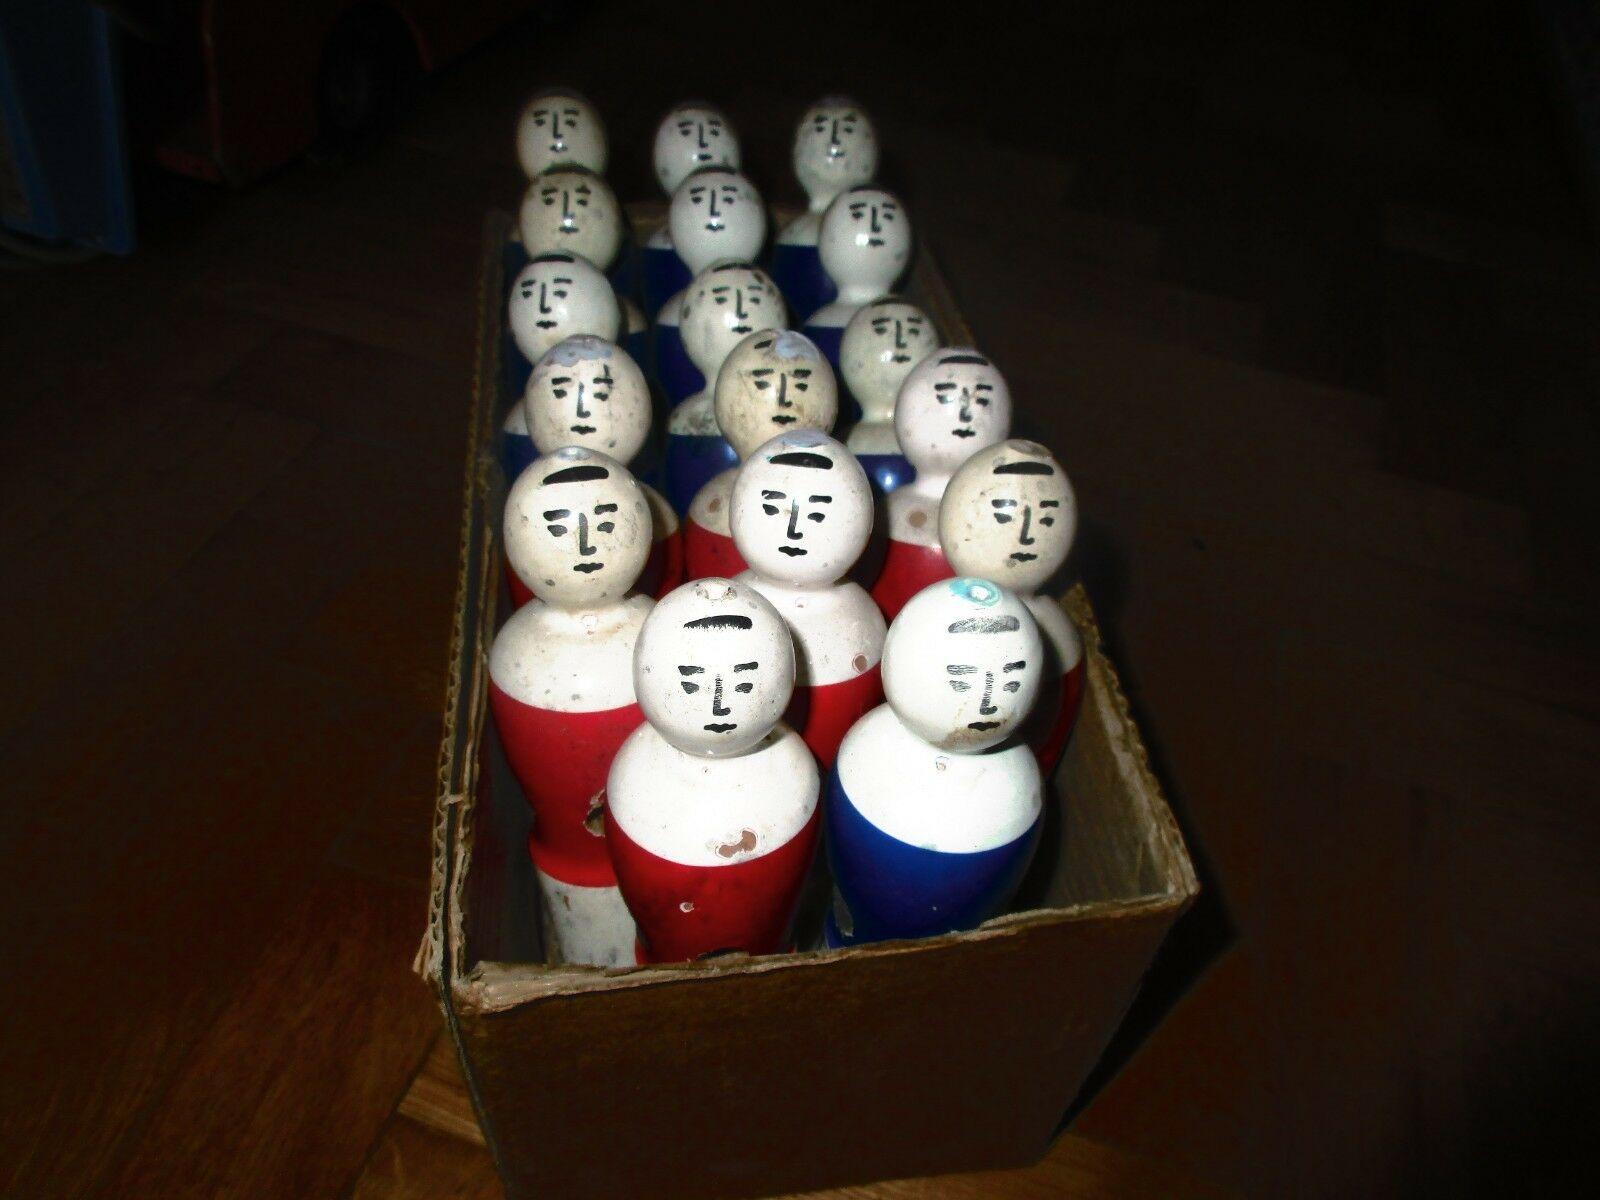 UNIQUE VINTAGE GREEK LOT WOODEN FOOTBALL PLAYERS FROM GAME TABLE 60s